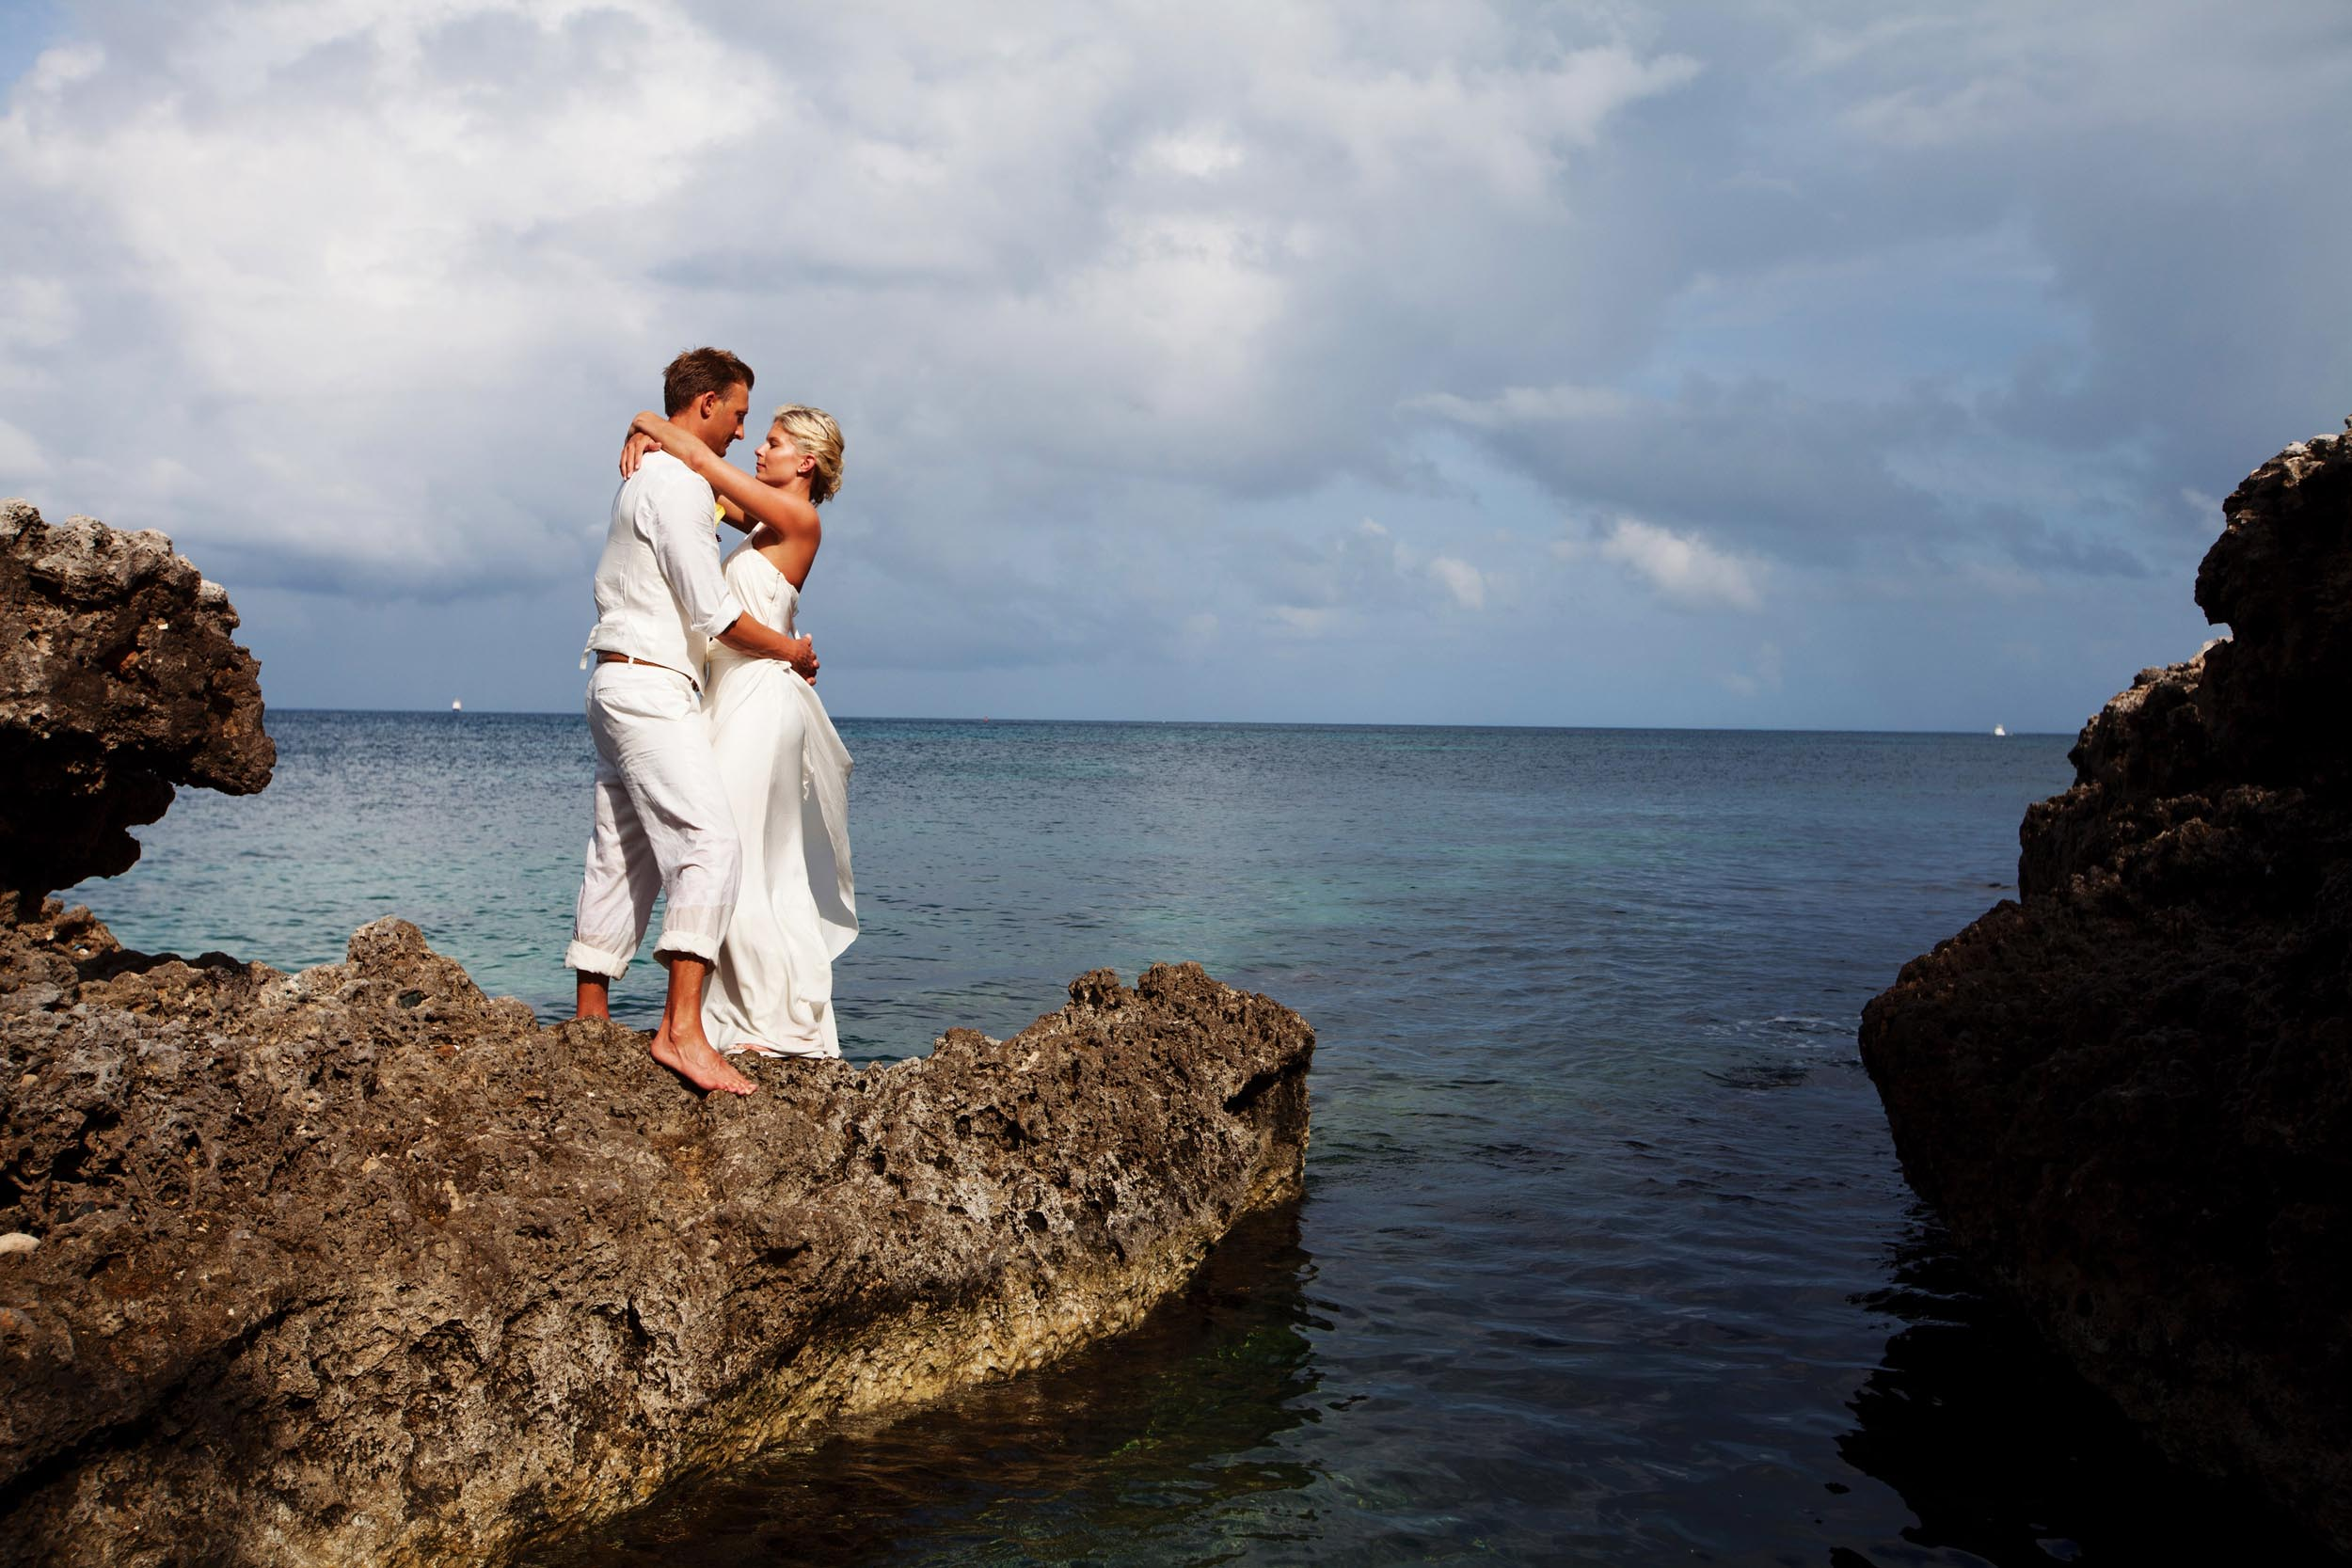 weddings-aruba-22.jpg